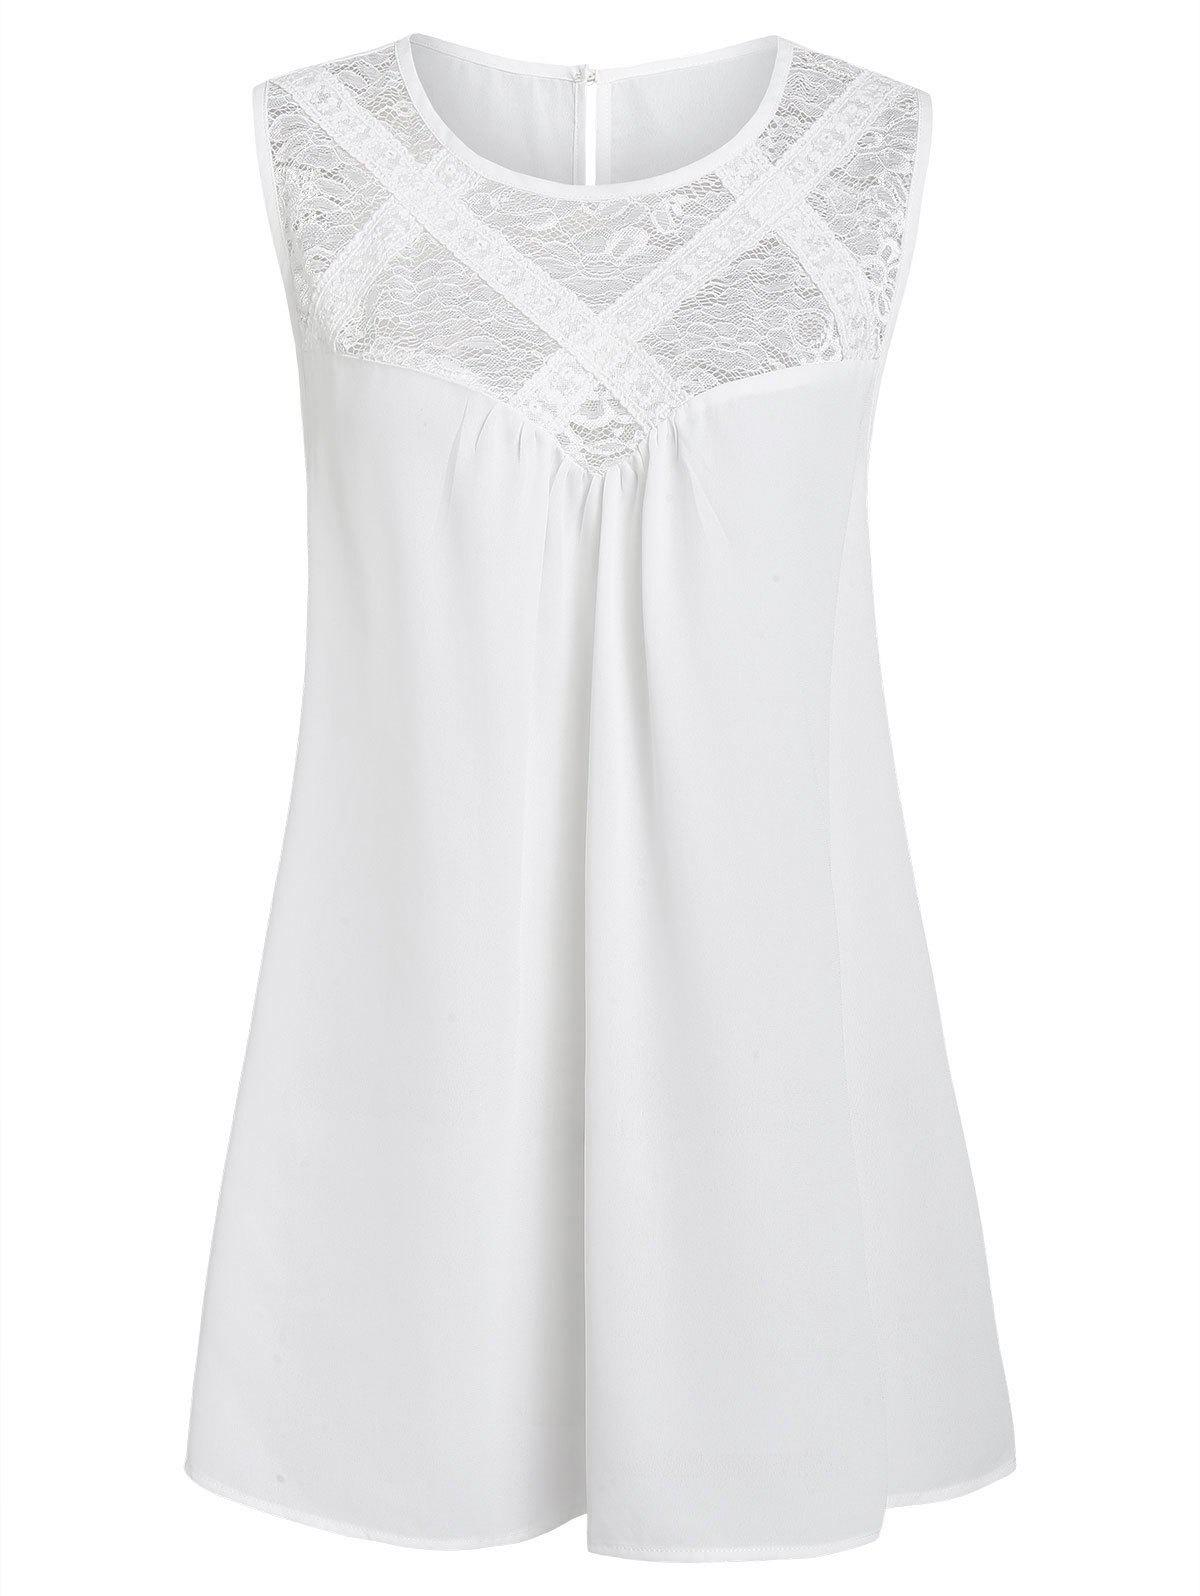 Plus Size Lace Insert Sheer Solid Tank Top - WHITE L